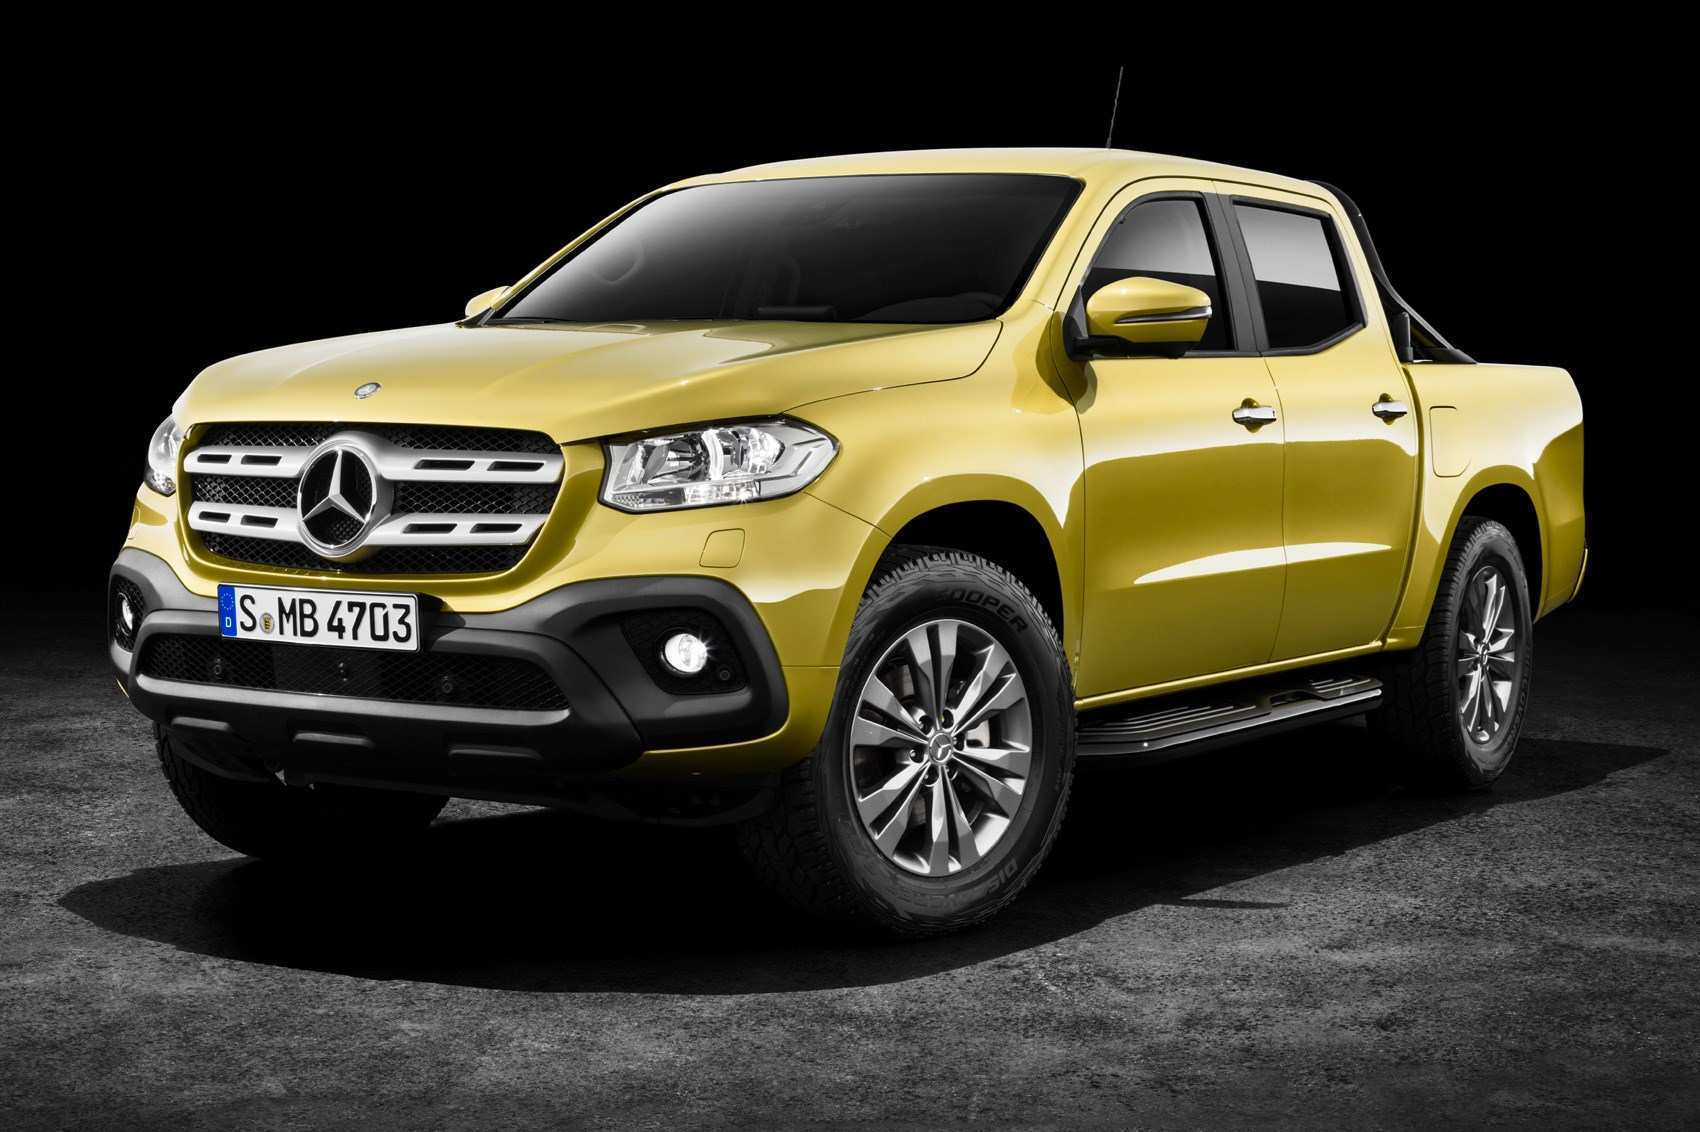 27 Concept of New 2019 Mercedes X Class Release Date And Specs New Review by New 2019 Mercedes X Class Release Date And Specs